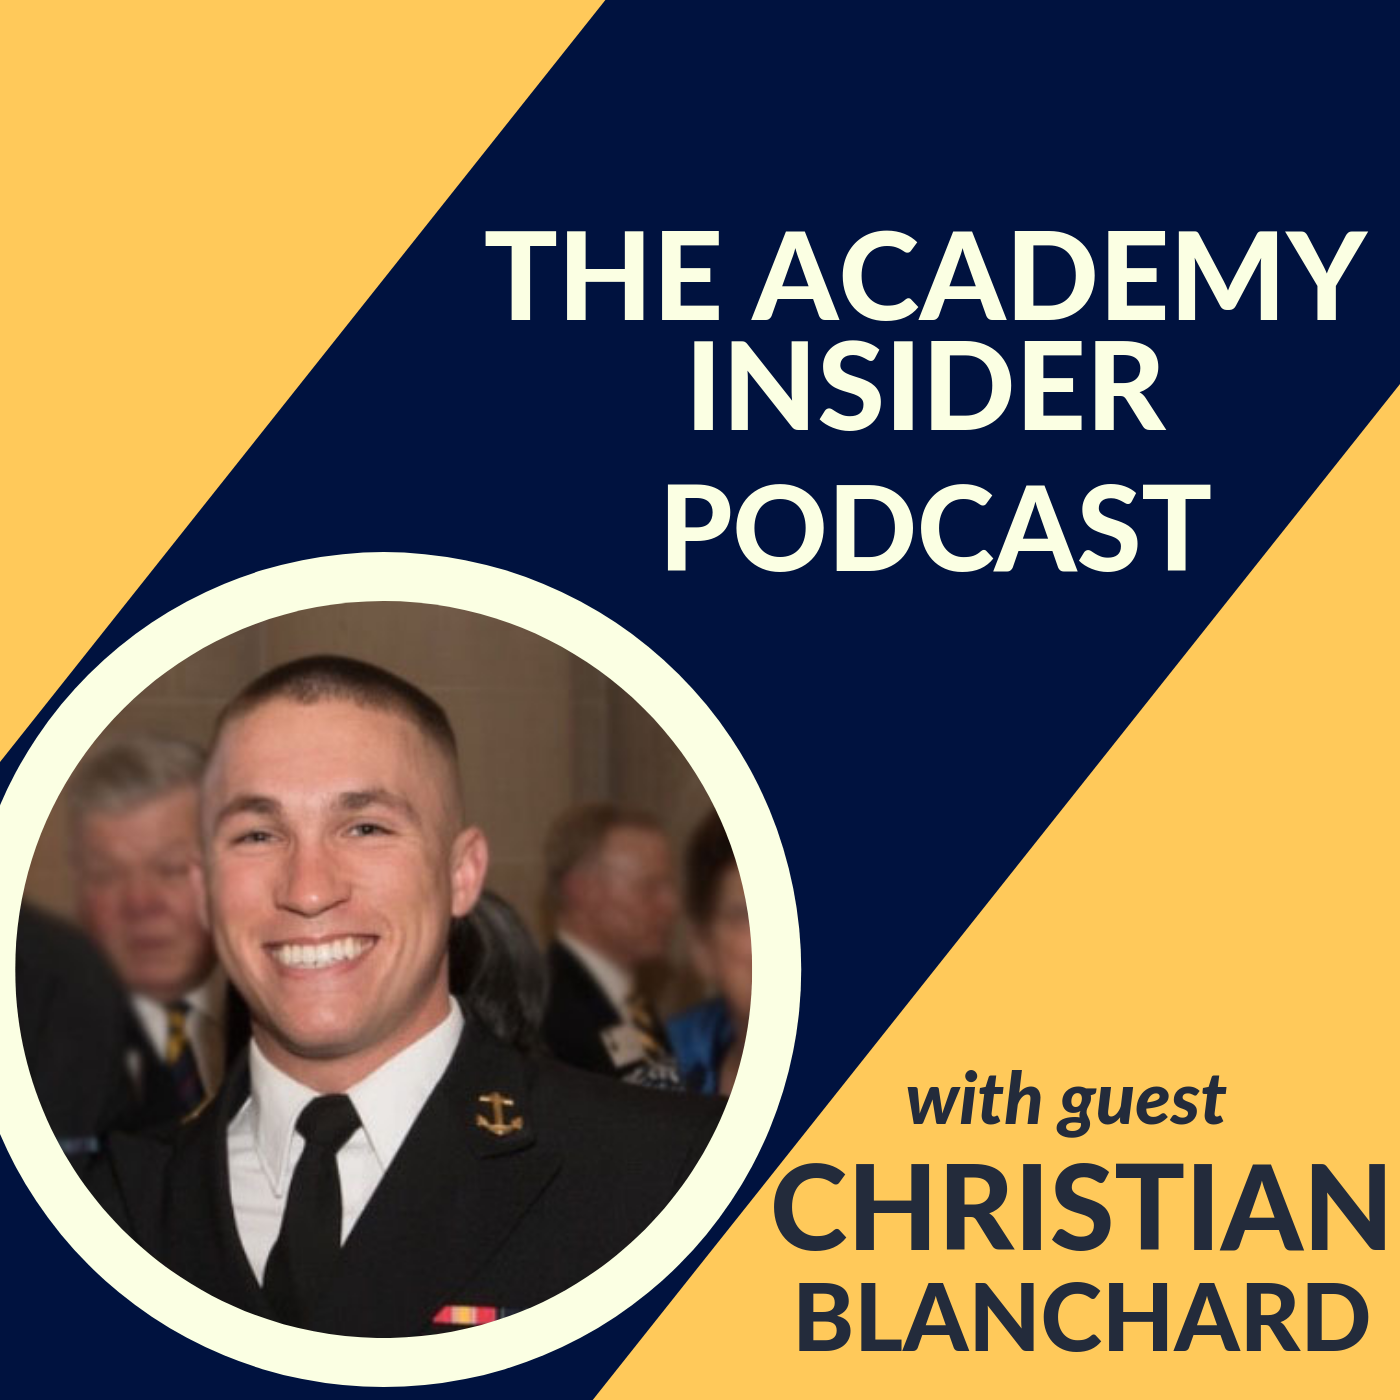 The Academy Insider Podcast with Grant Vermeer